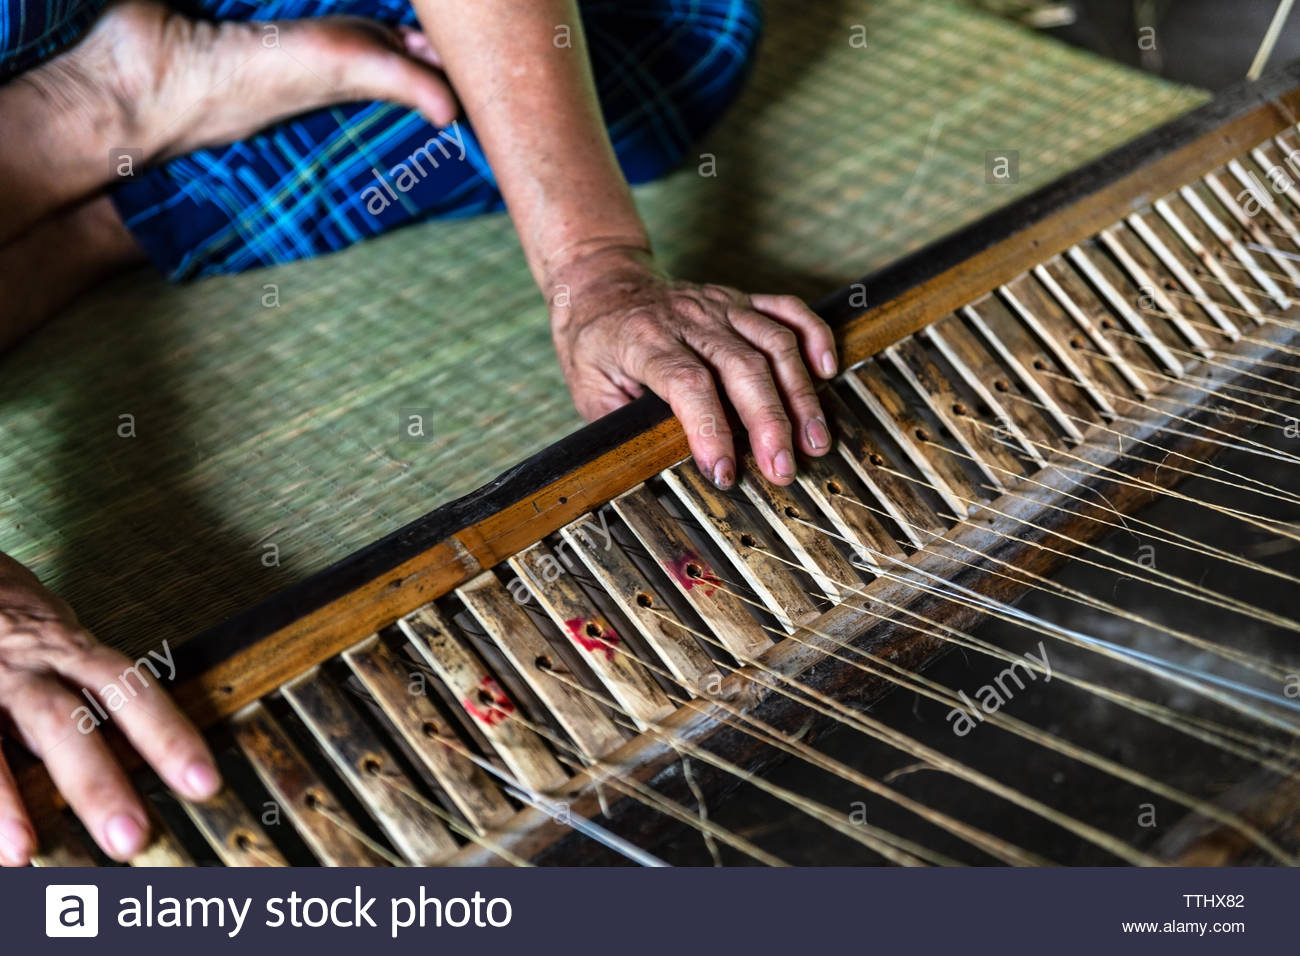 Close-up on the hands of an old woman weaving sedge mat in the small village of Ben Tre in the Mekong delta region, Vietnam - Stock Image